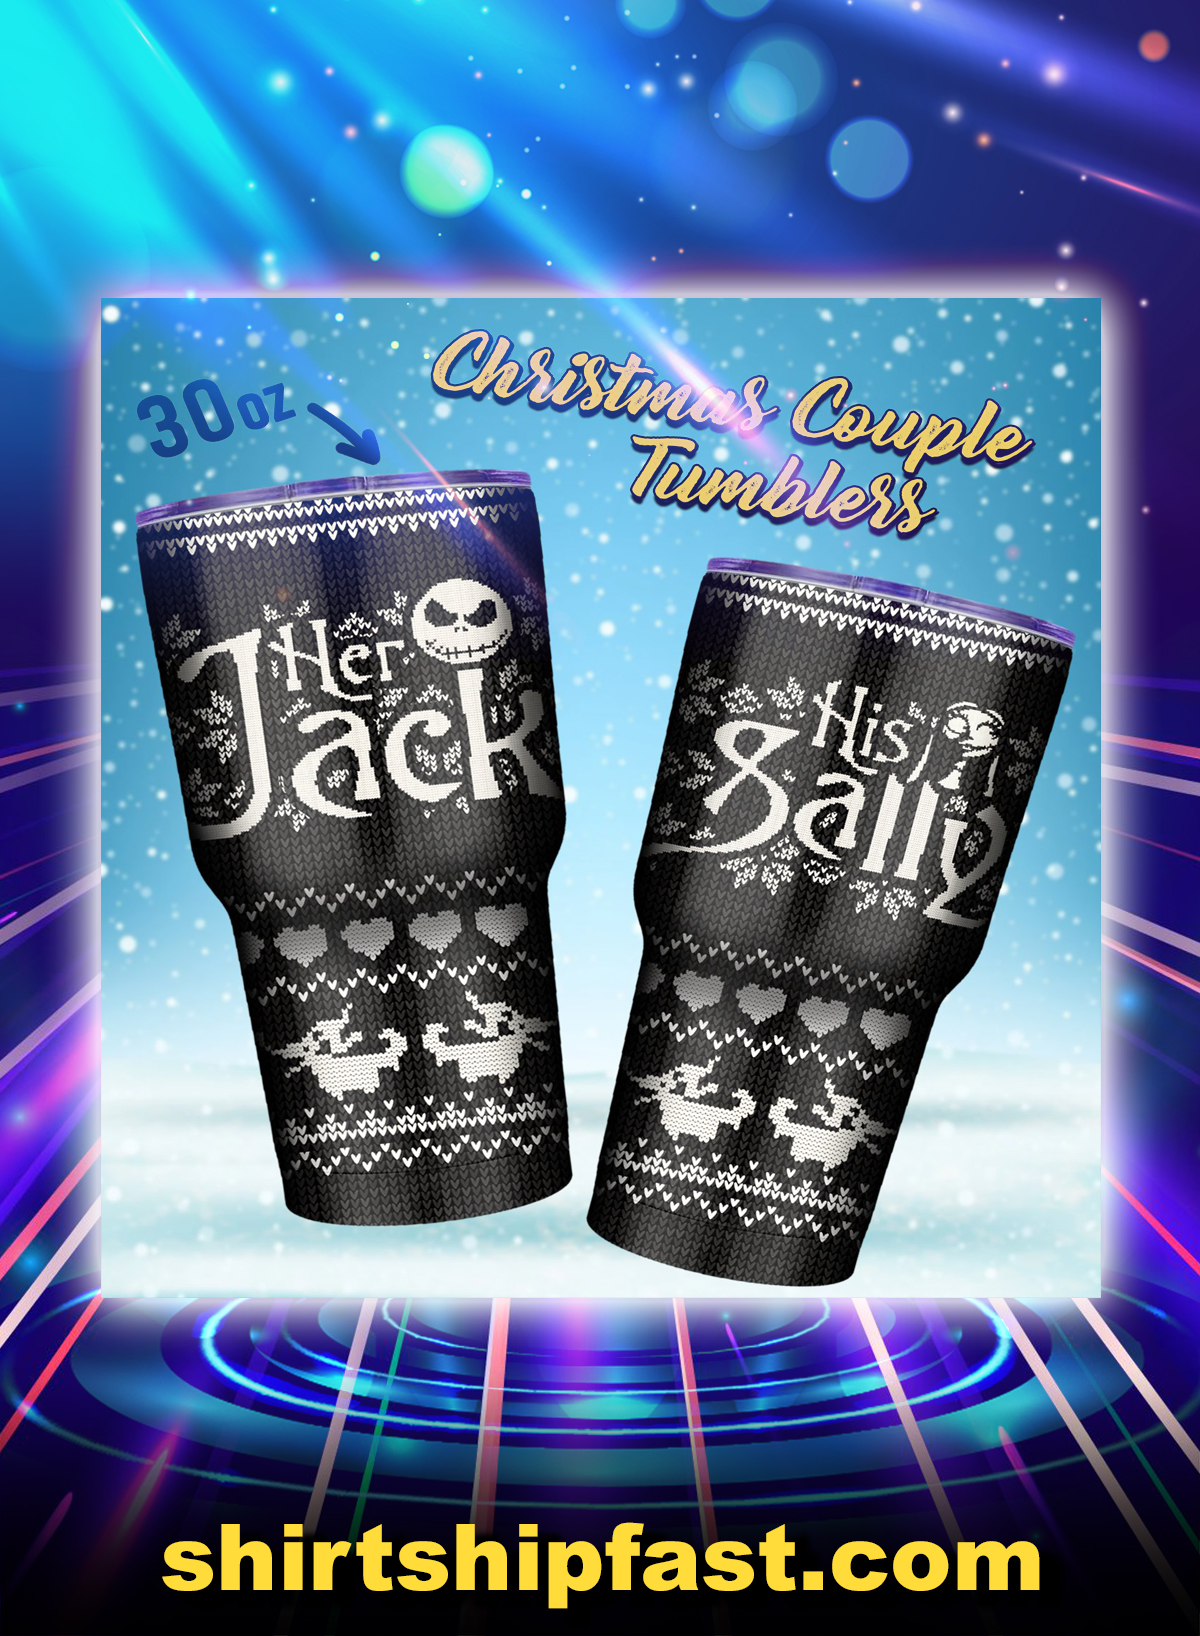 Jack and sally couple tumbler - Picture 1